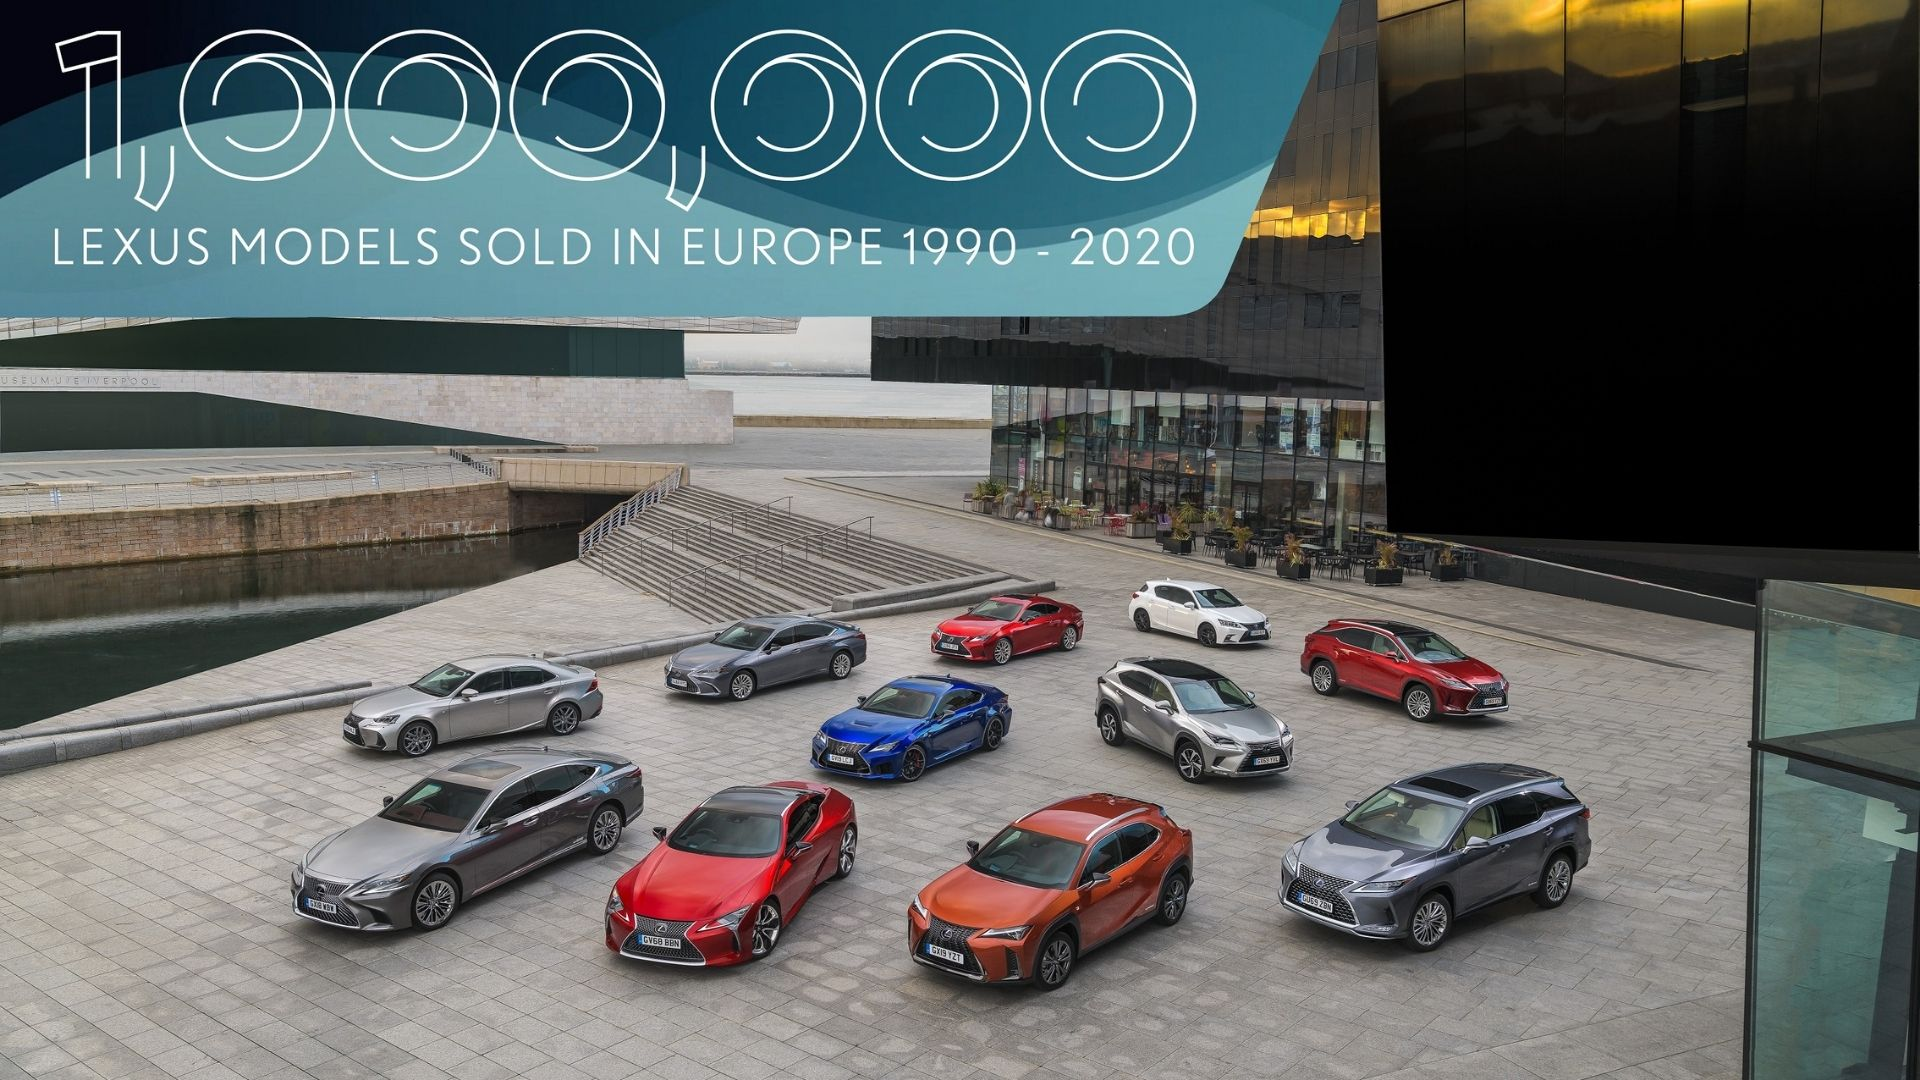 Million Lexus Models Sold in Europe